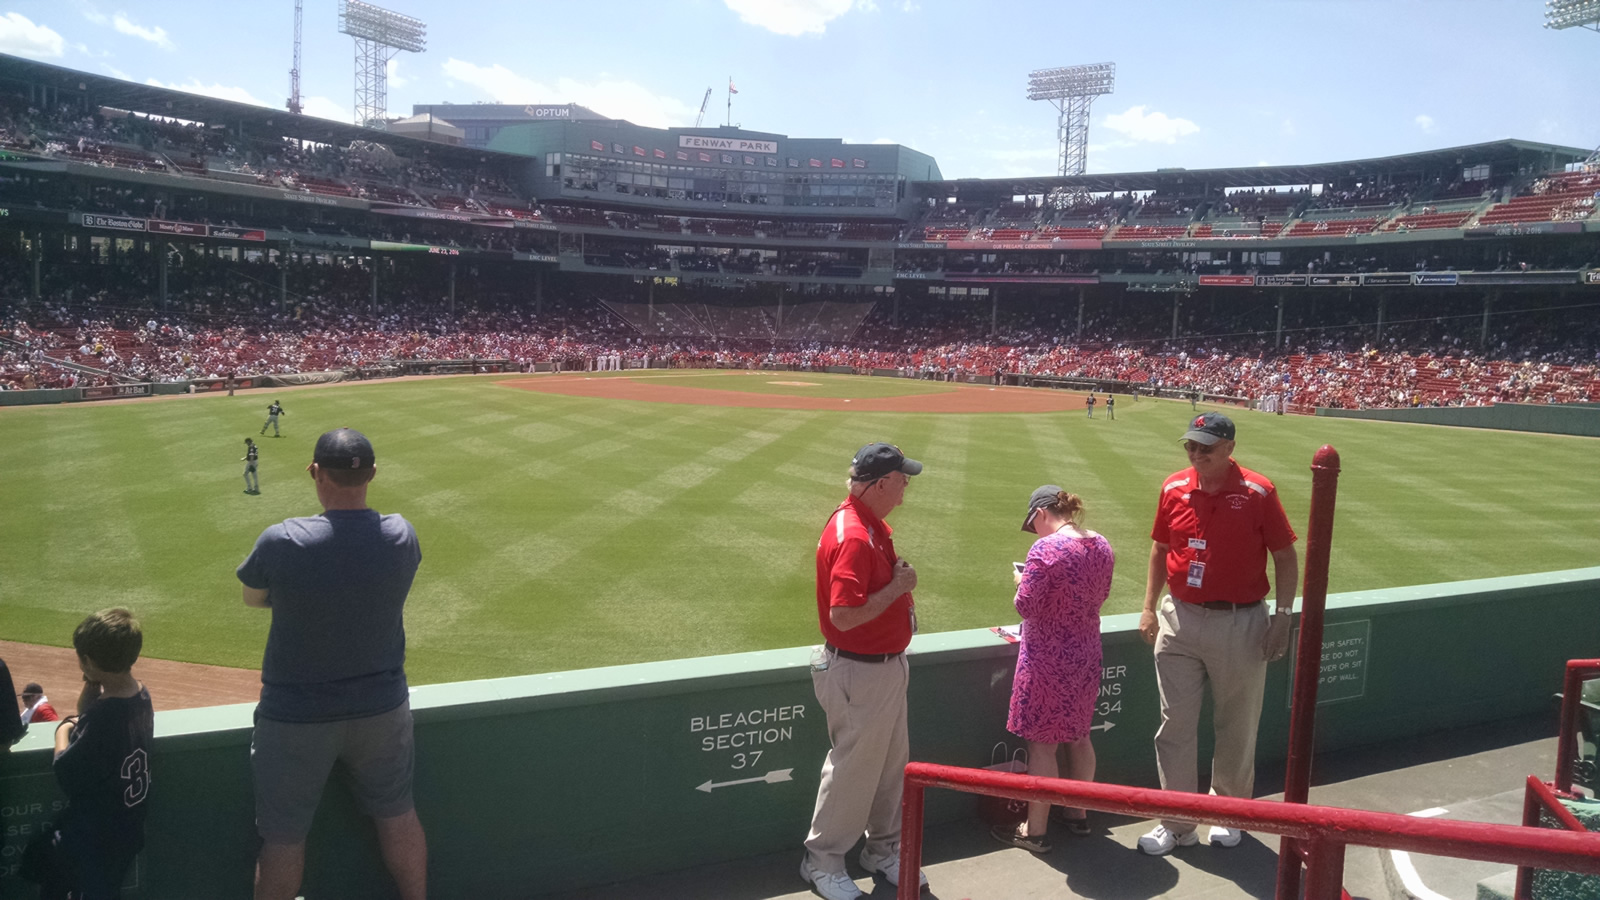 Seat View for Fenway Park Bleachers 37, Row 5, Seat 1